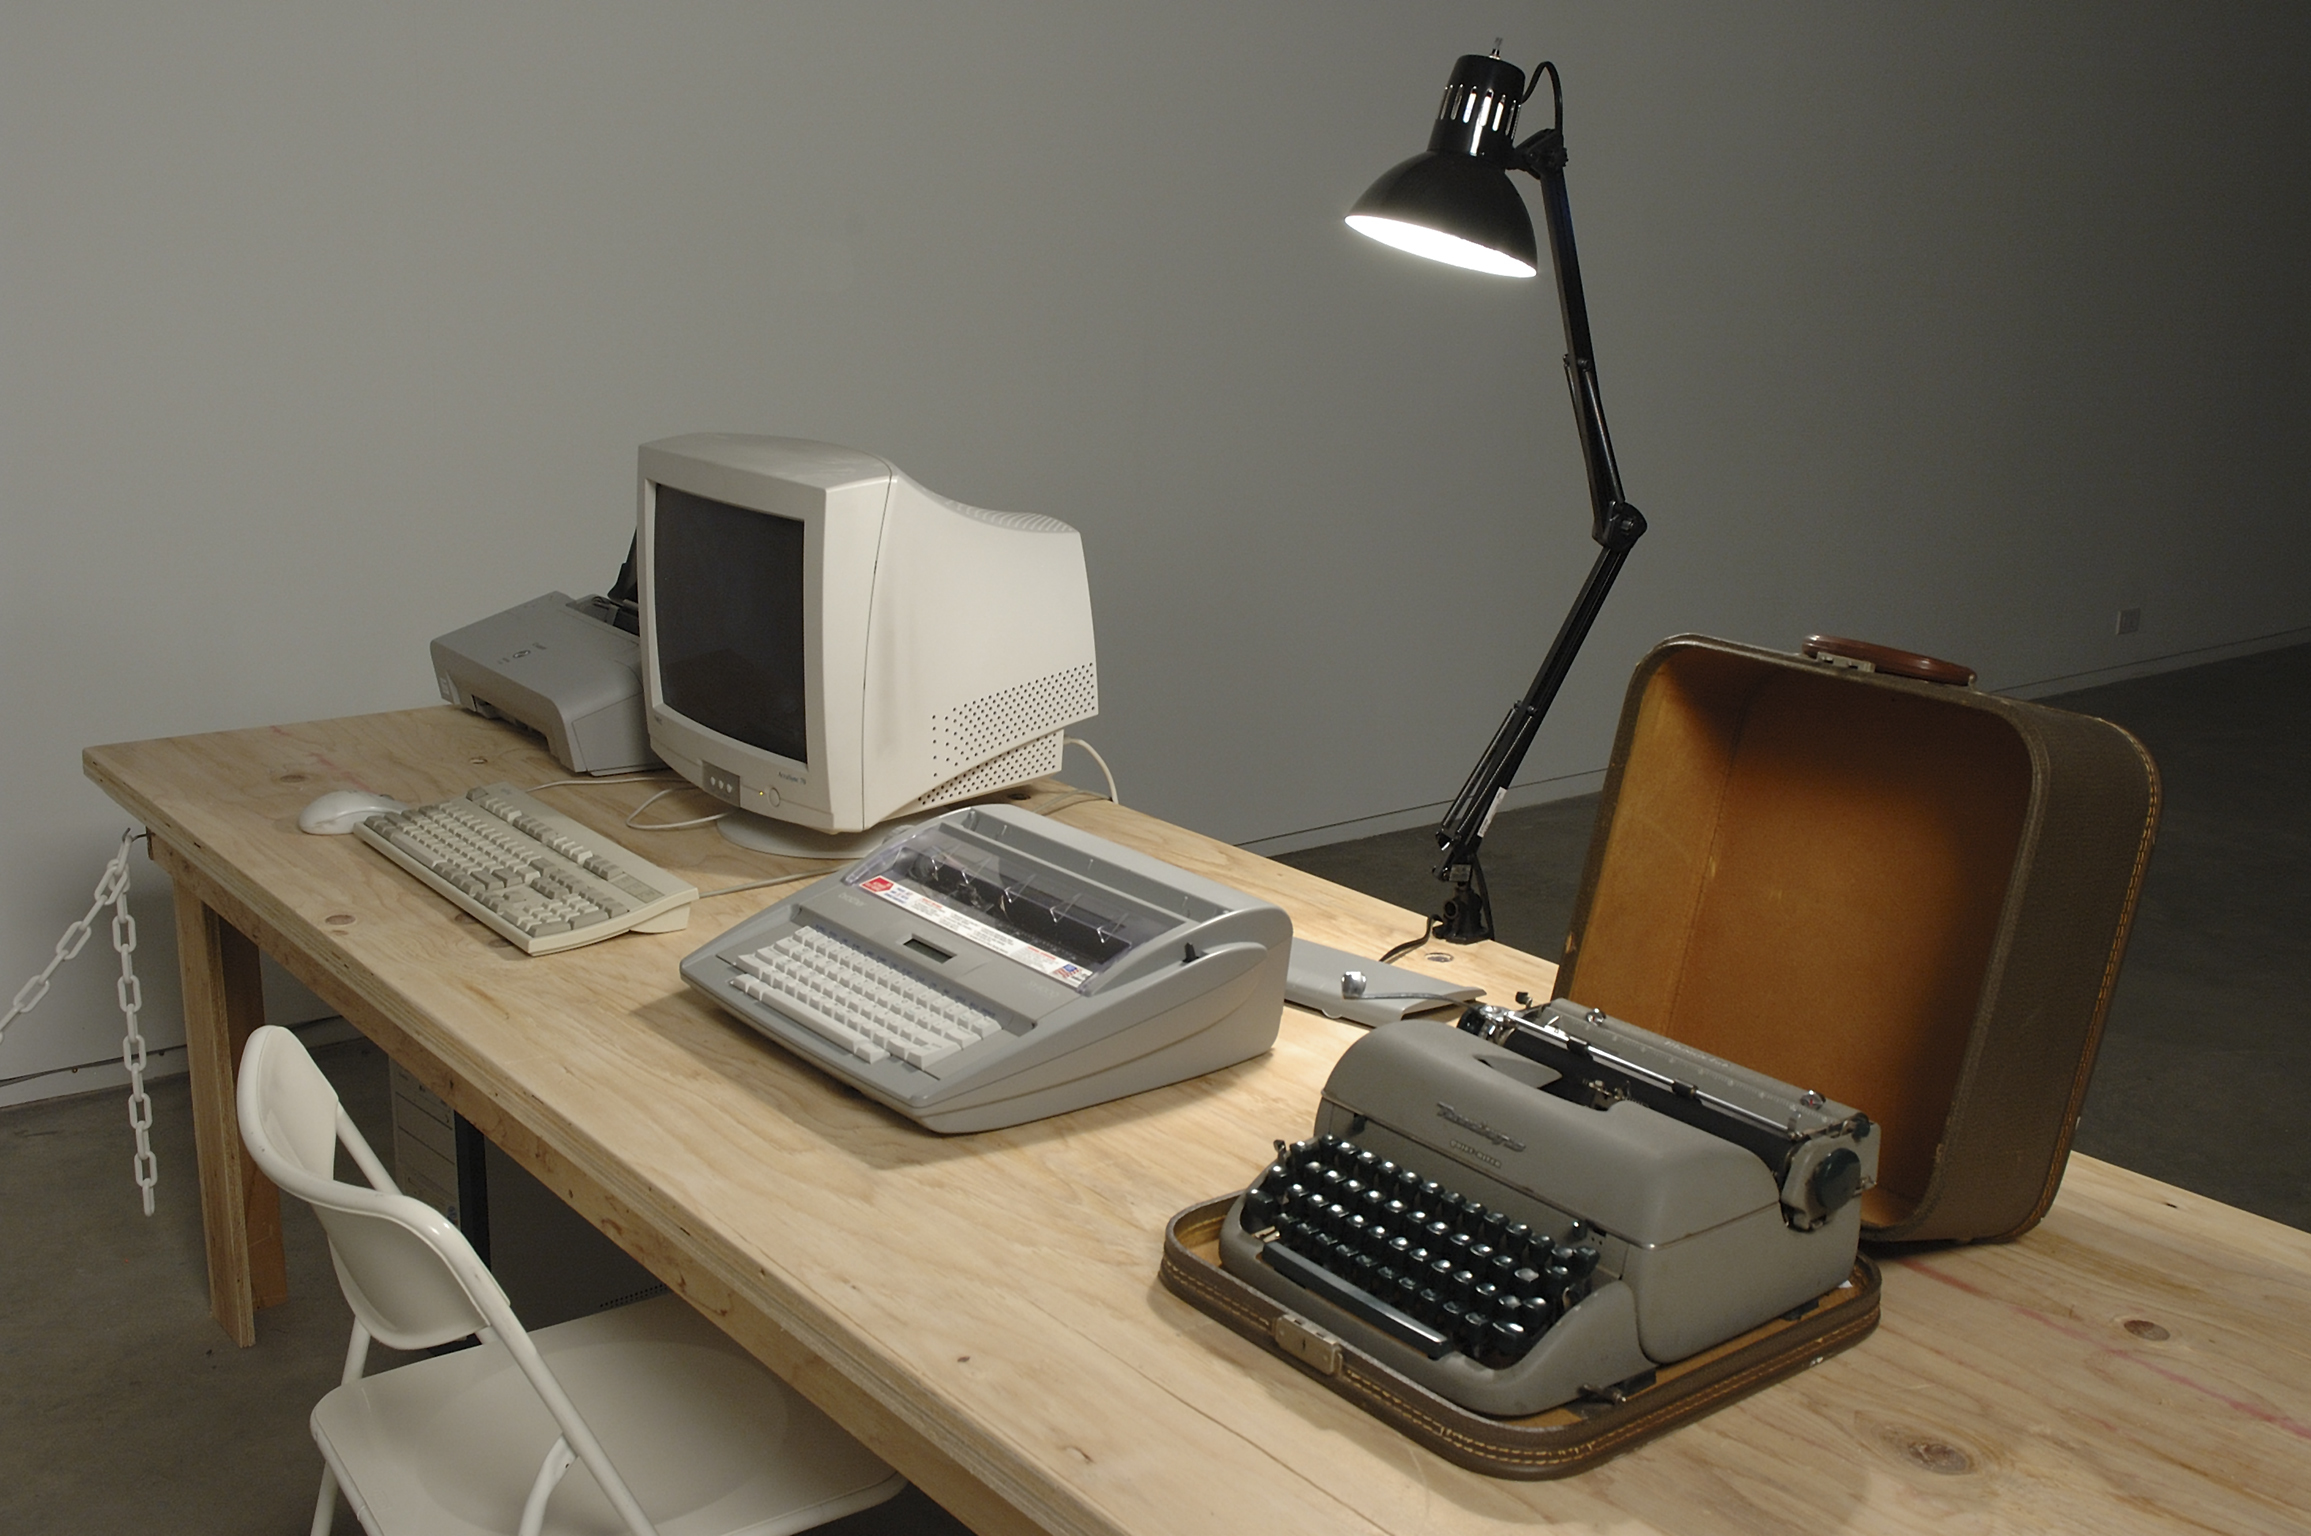 Isabelle Pauwels, Untitled, 2006, remington manual typewriter, brother sx-4000 electronic typewriter, CPU, monitor, printer, white office chair, shelf, lamp, time cards, filing tray, office supplies, galley slave edition poster, dimensions variable by